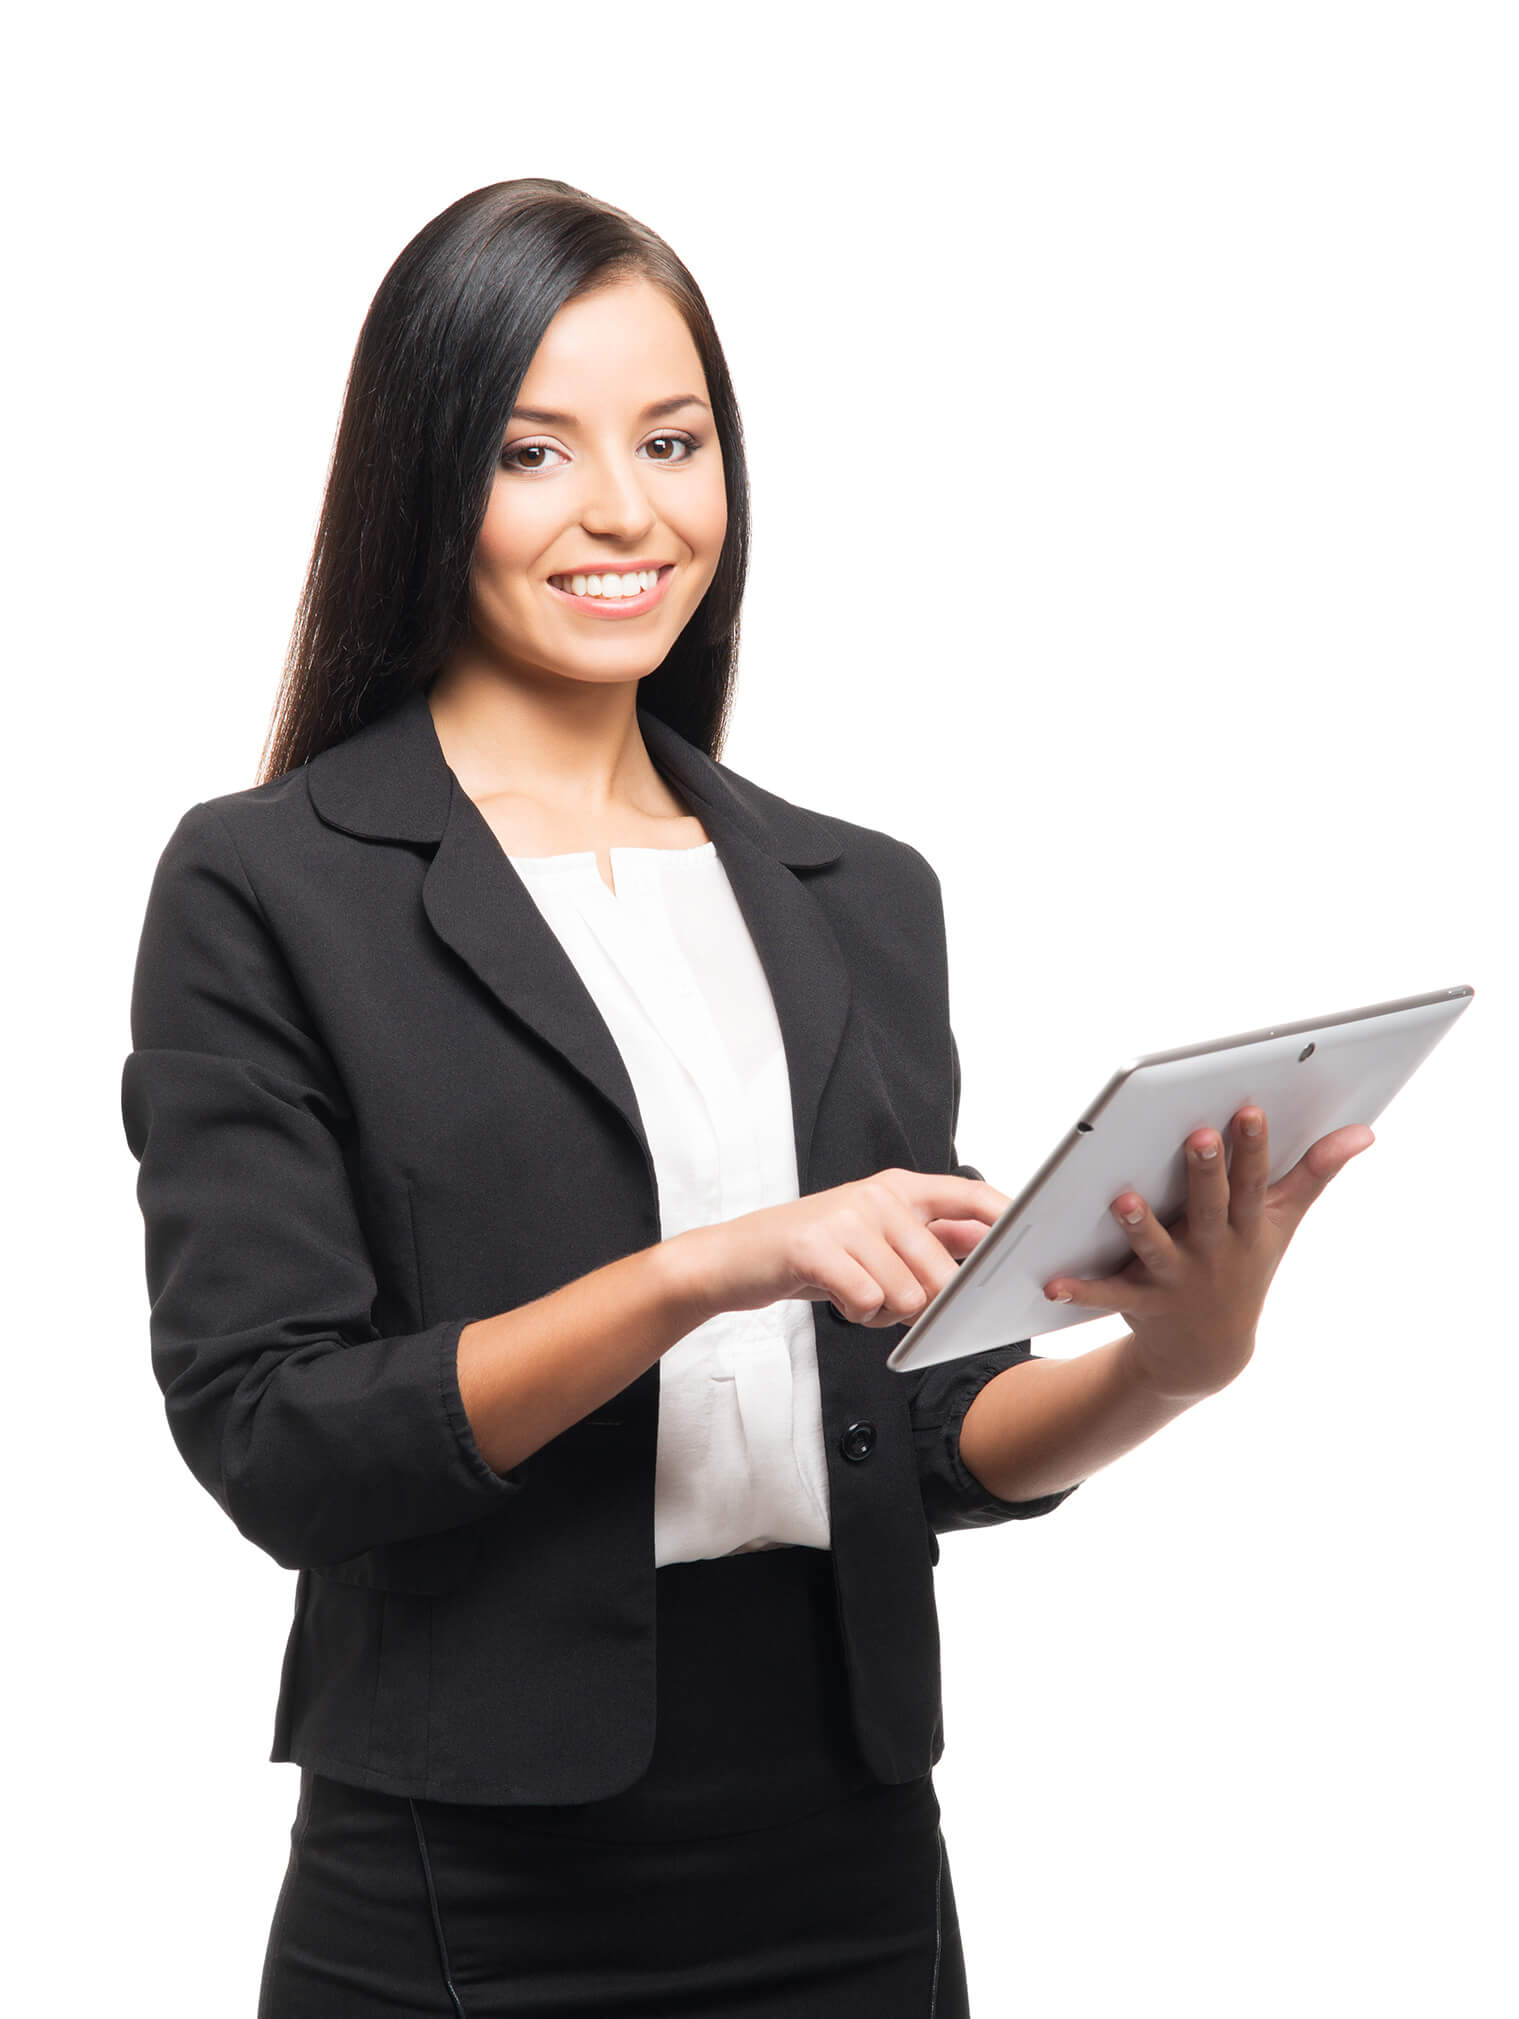 business person smiling holding tablet